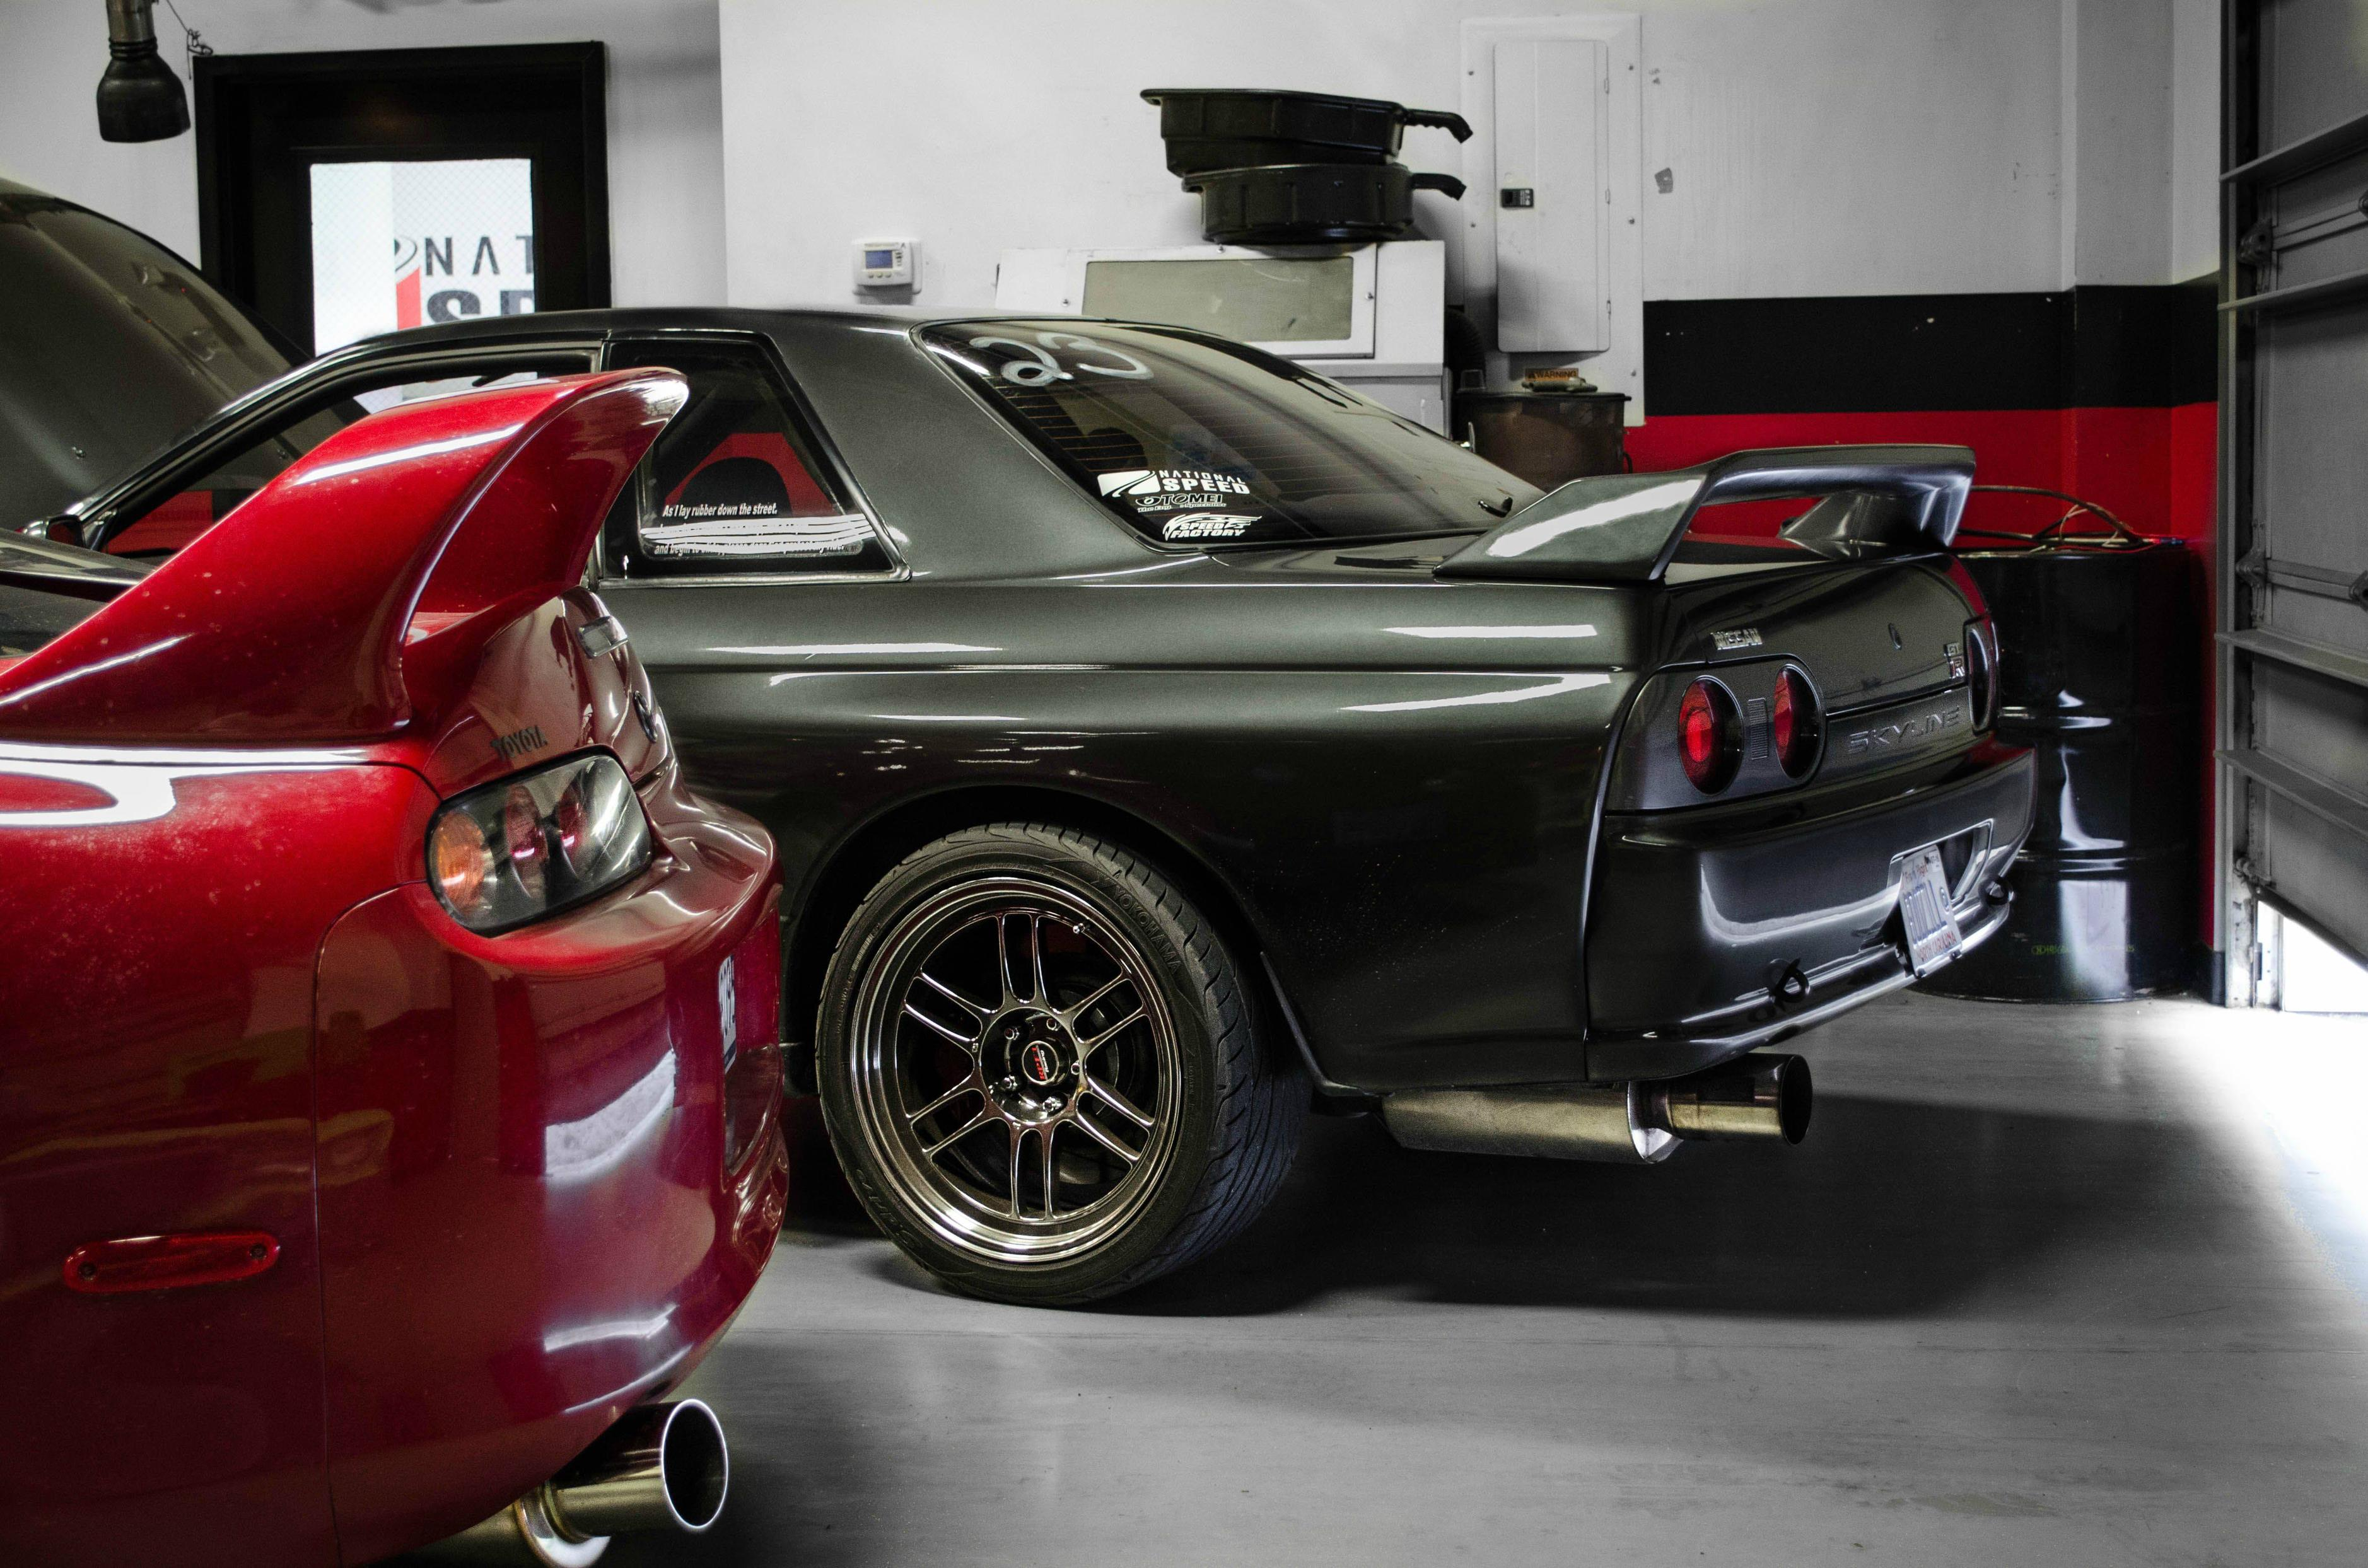 Jdm Backgrounds Free Download